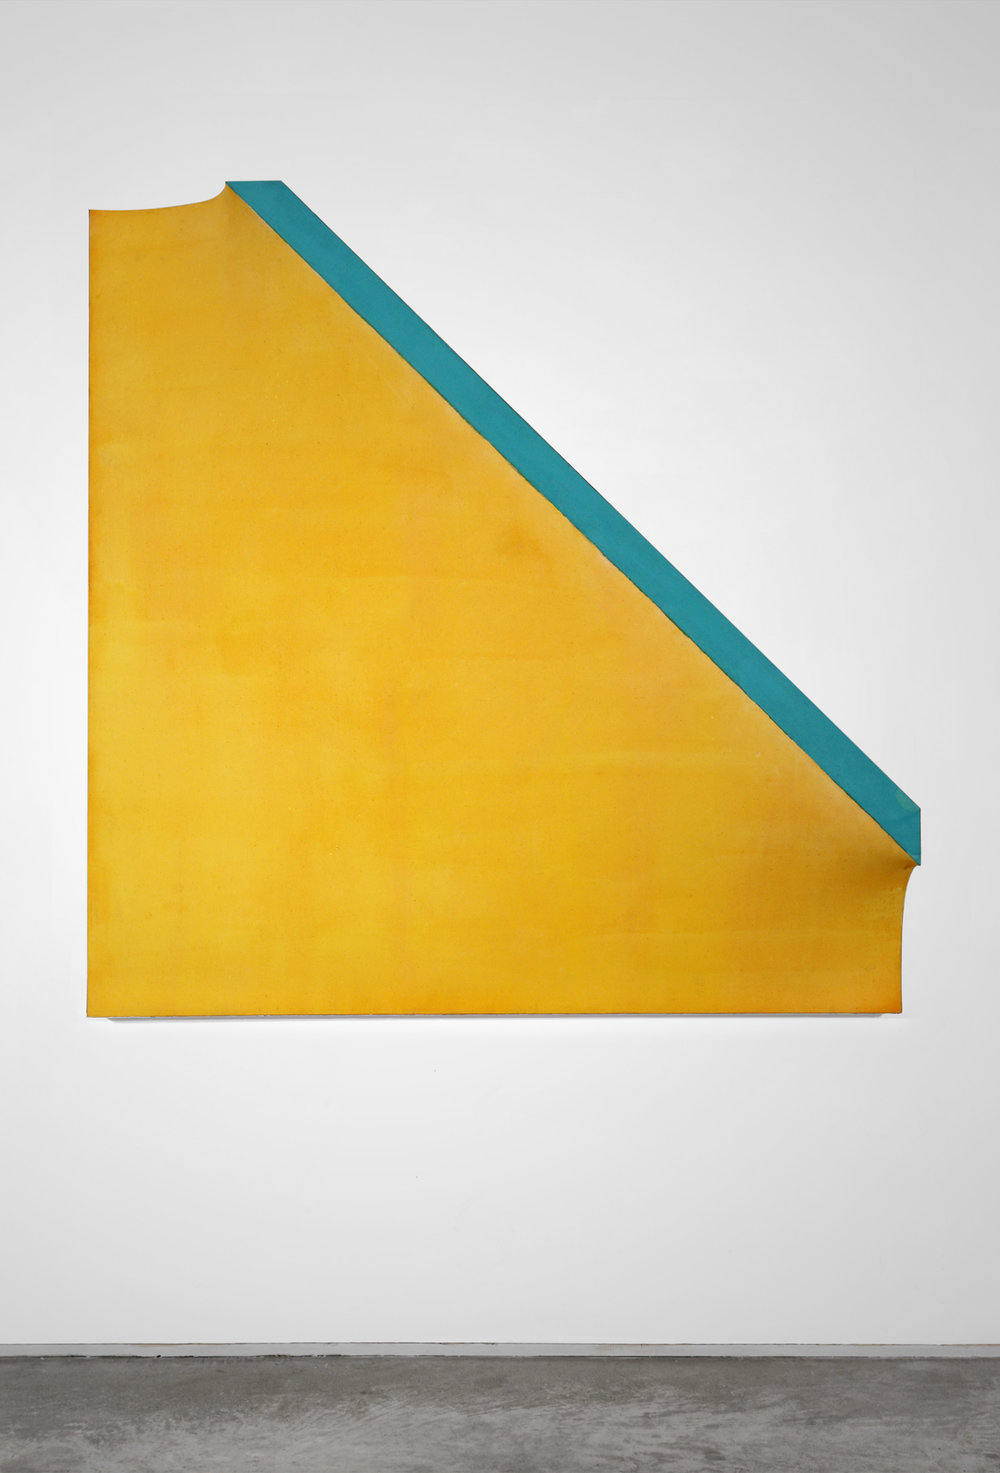 Richard Smith (1931–2016),   A Whole Year a half a day XI , 1966, acrylic on canvas, 48 x 48 x 12 in. (121.9 x 121.9 x 30.5 cm)